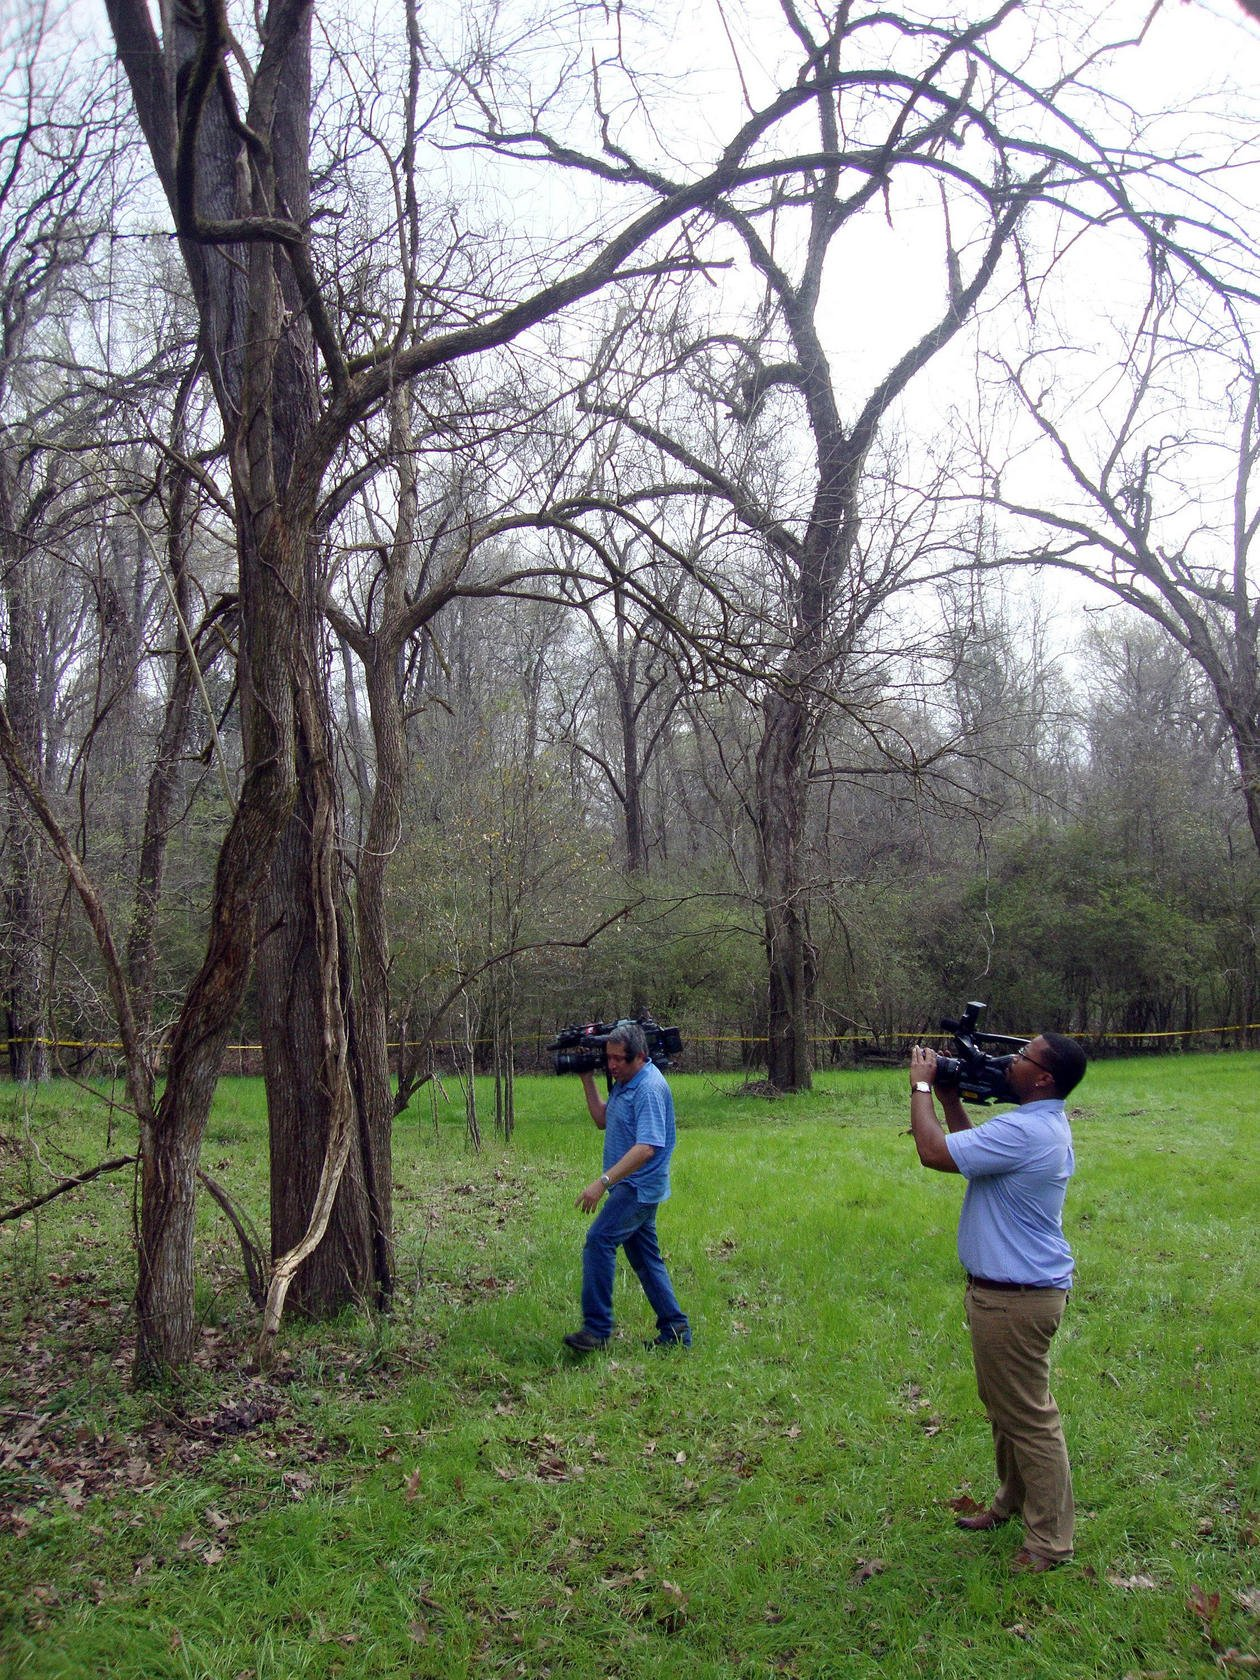 Discovery of hanged black man in Mississippi raises questions about